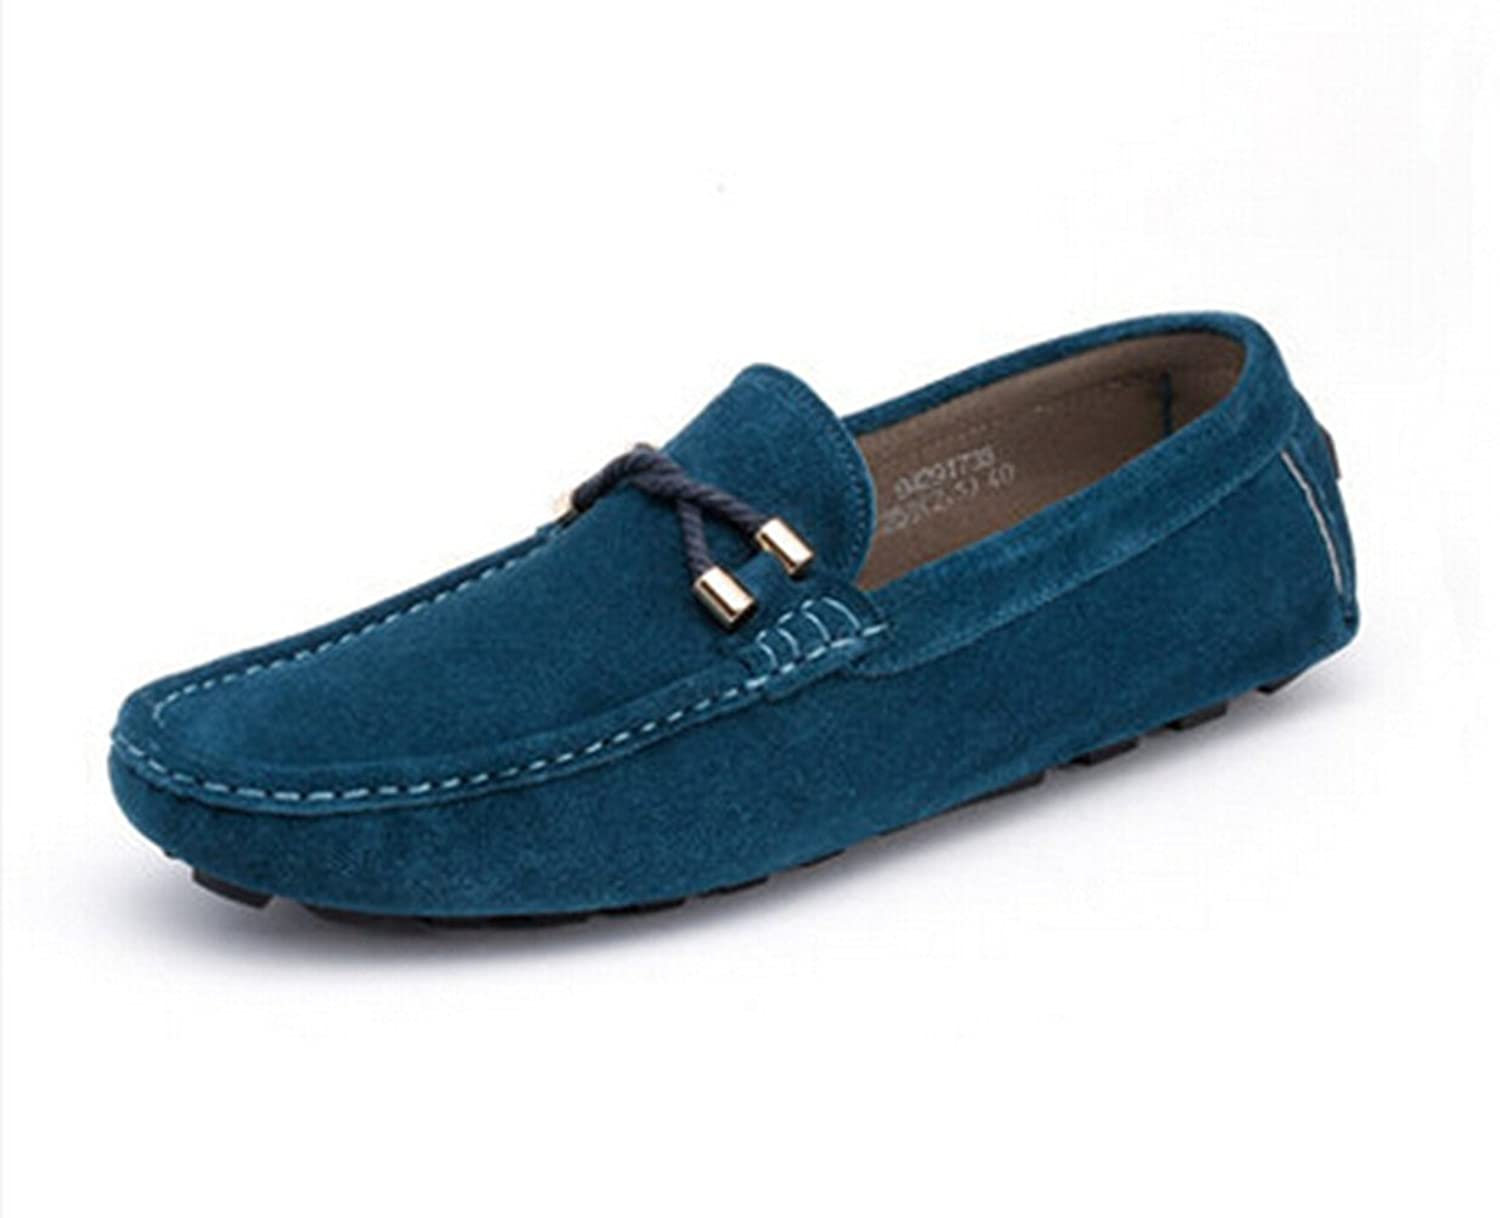 Happyshop(TM) New Nubuck Swede Leather Casual Slip on Loafers Driving Mens Shoes Moccasin